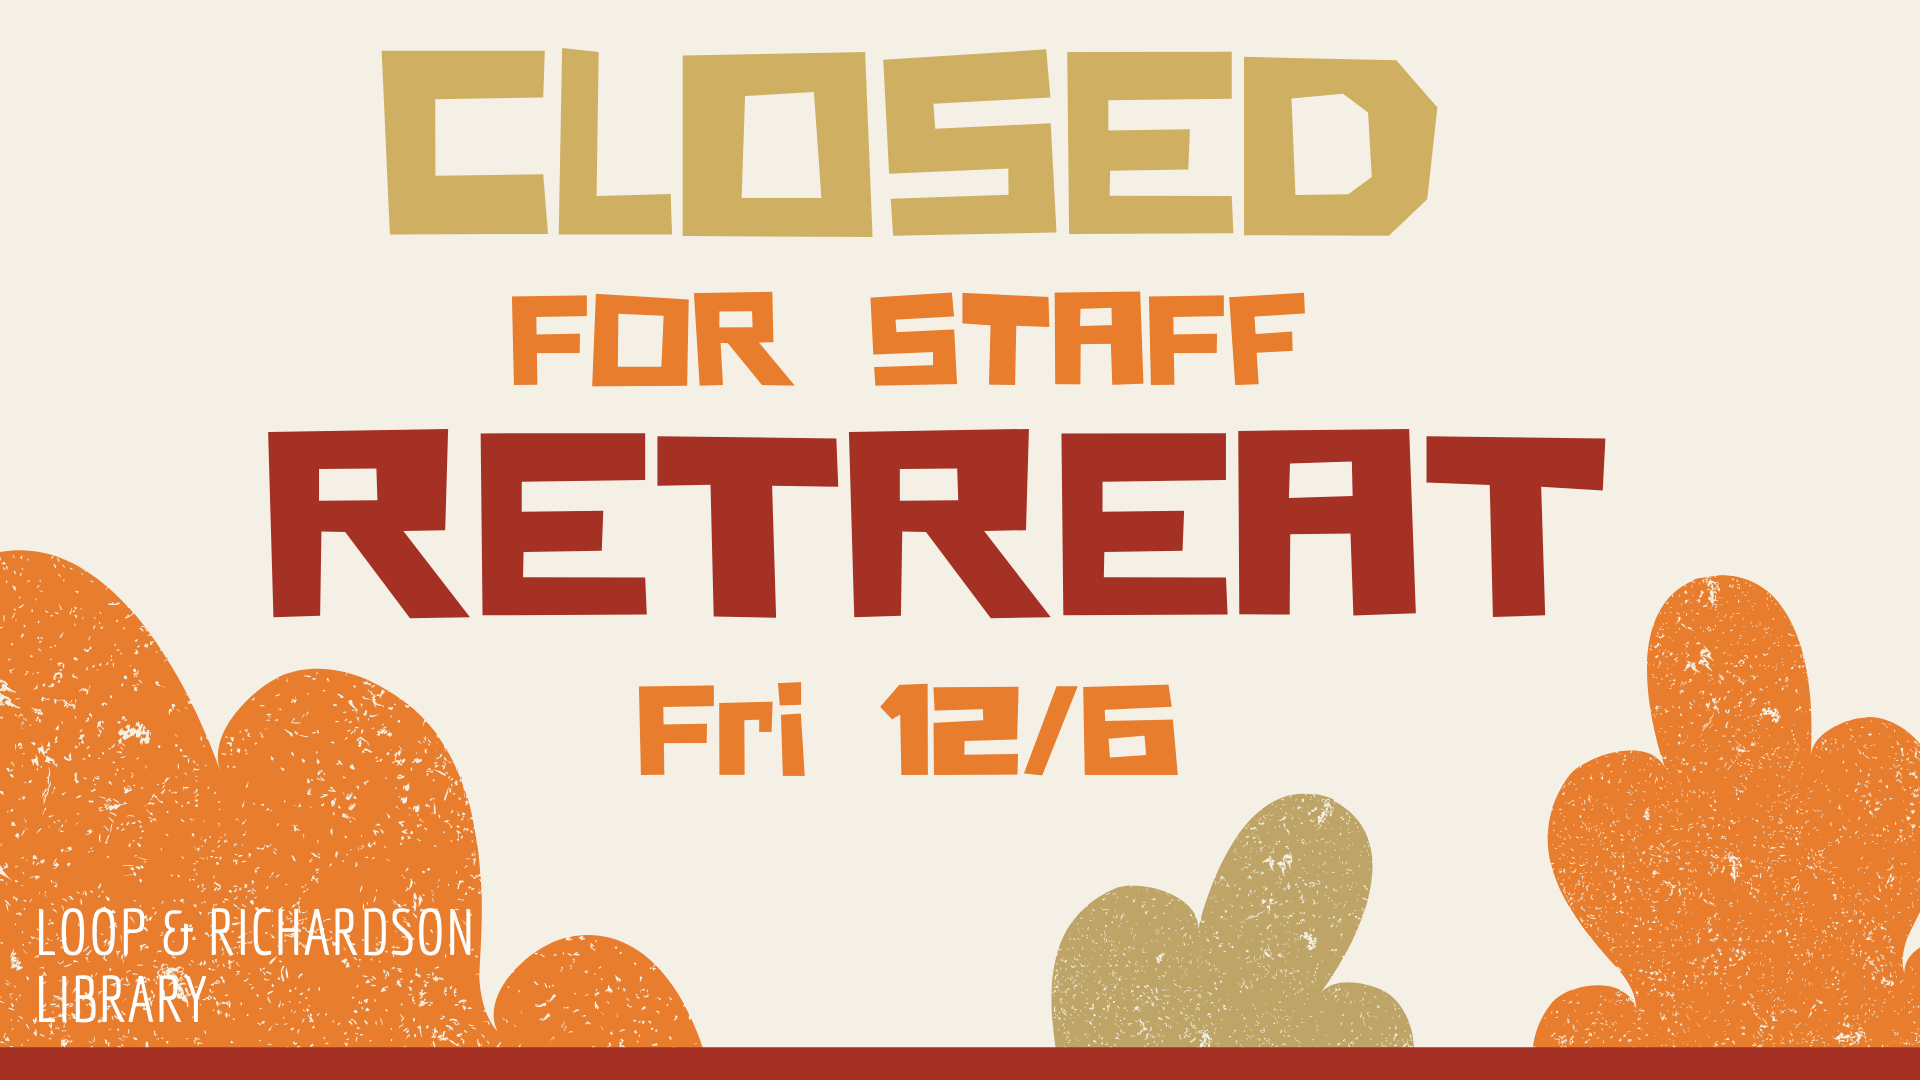 Library Will be Closed Friday December 6